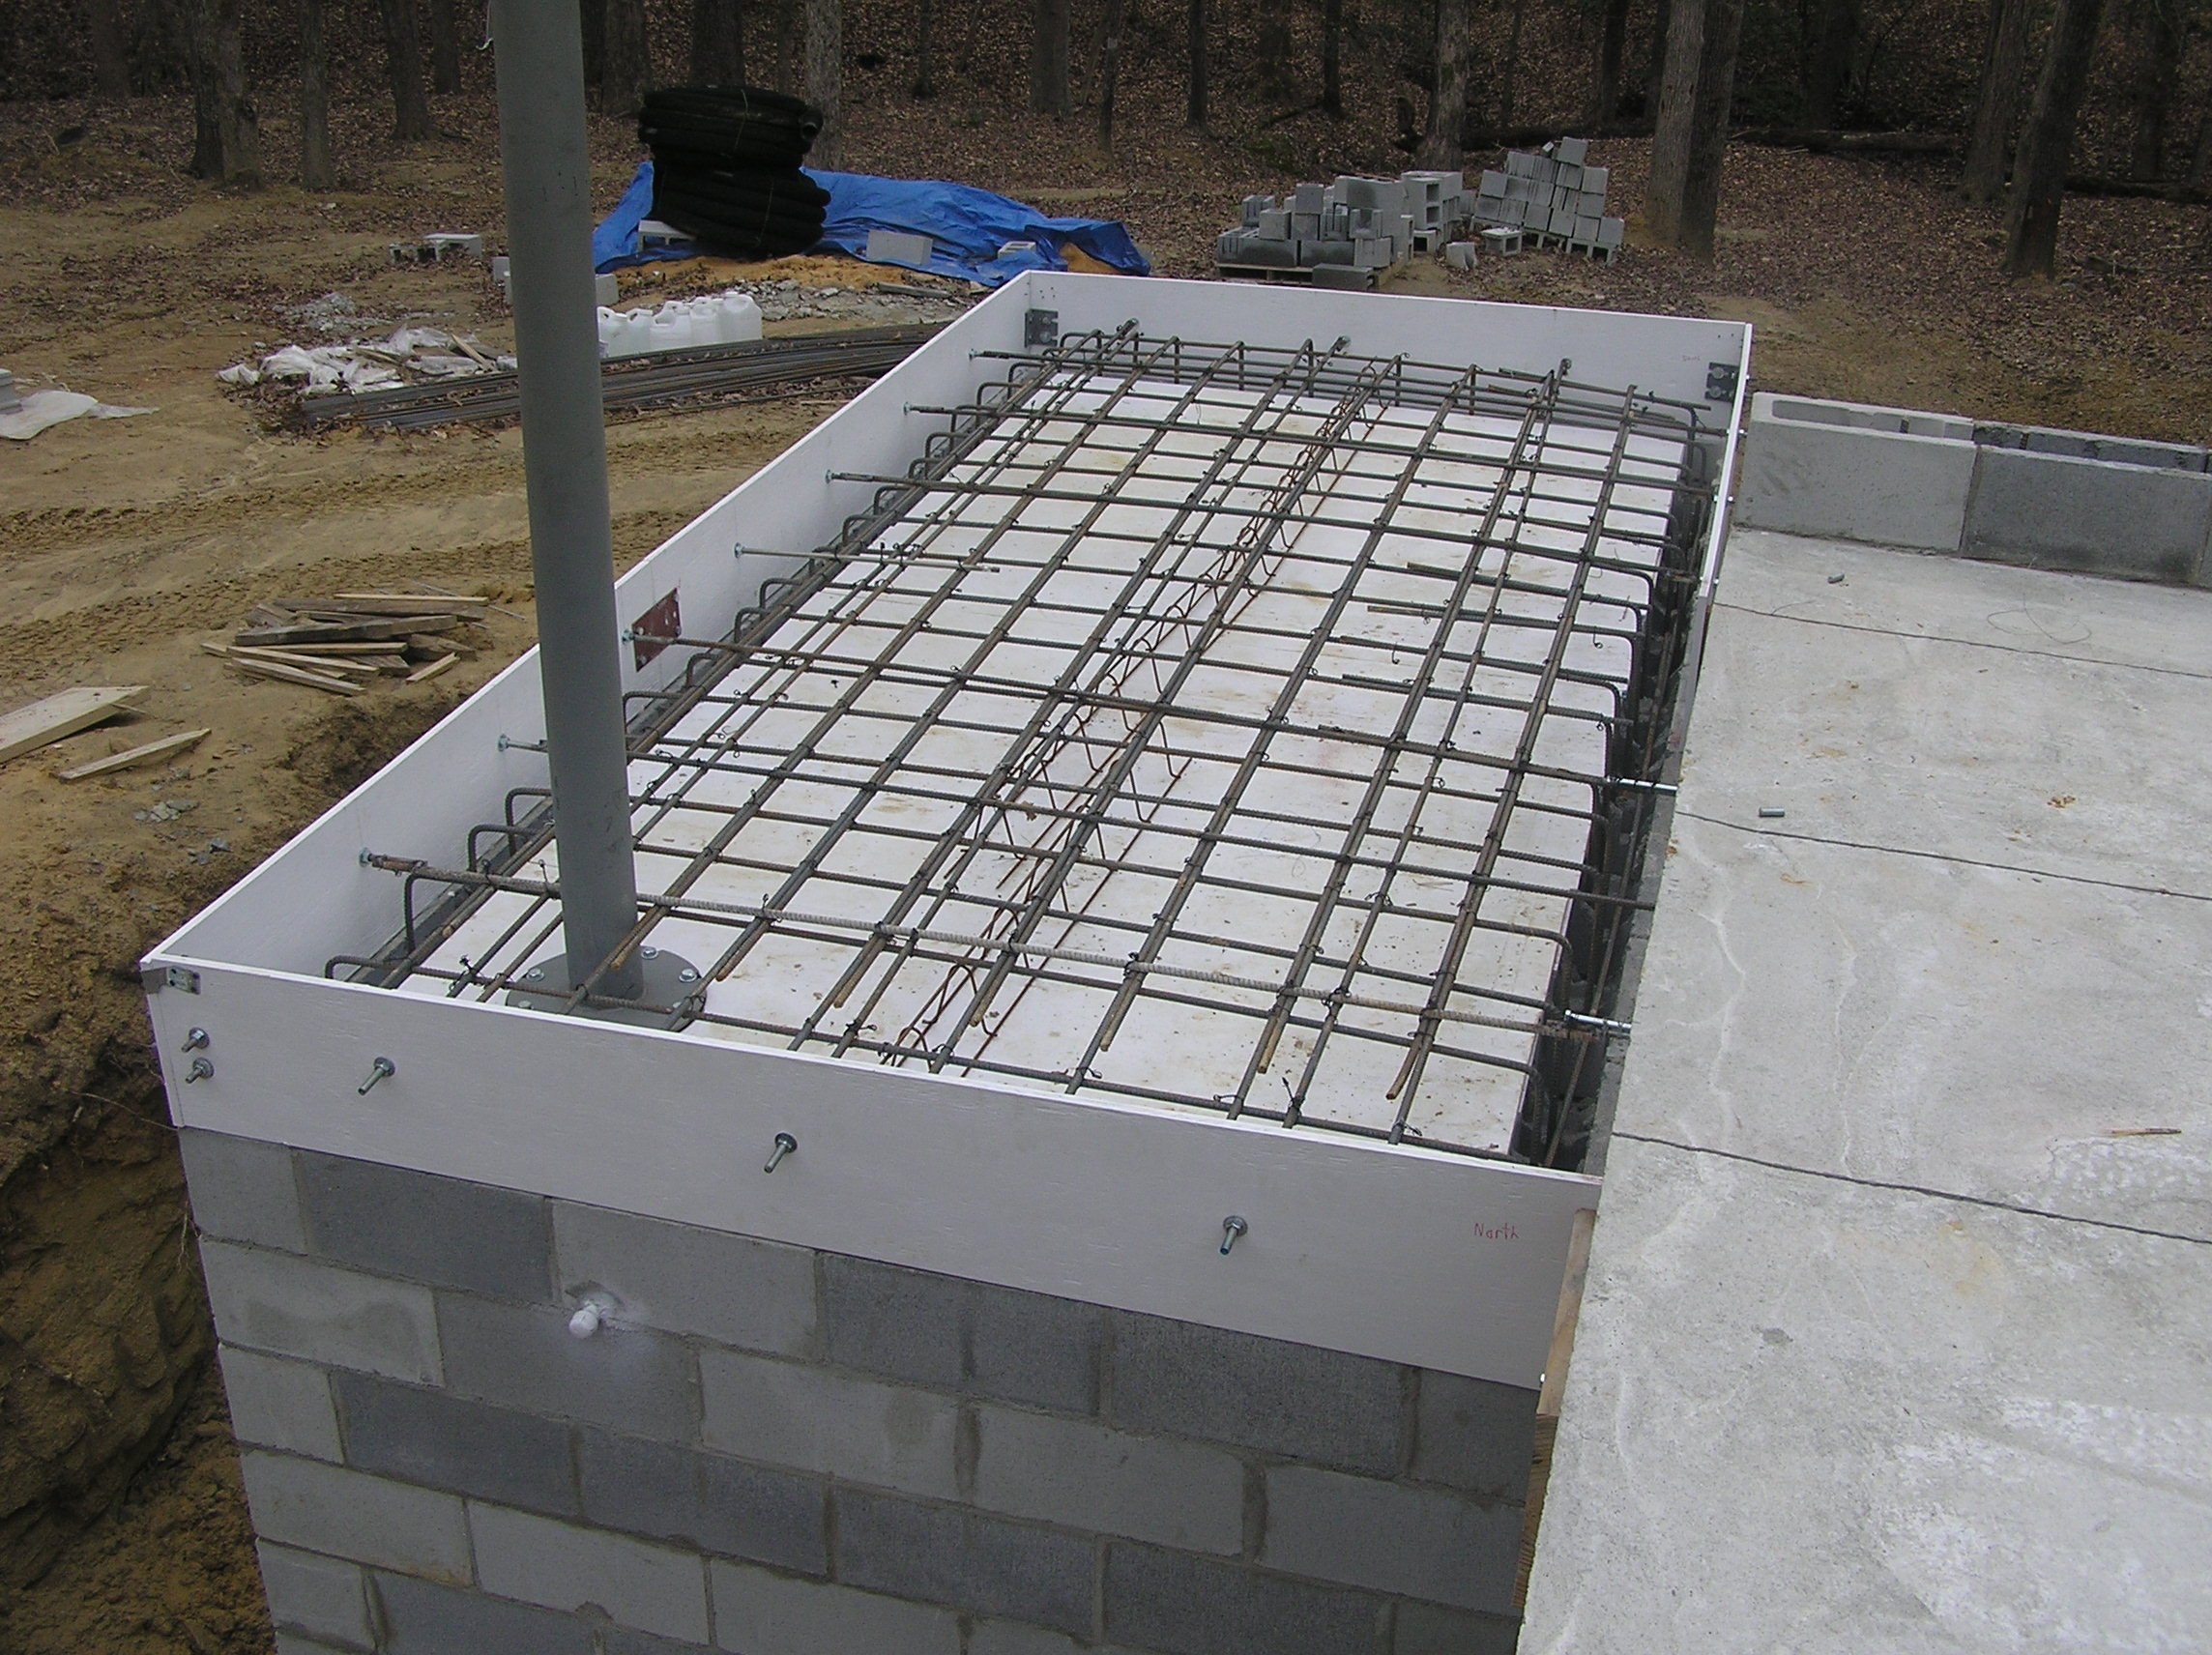 Shelter build series 1 american safe room 39 s underground shelter kit - How put cement foundations ceilings ...